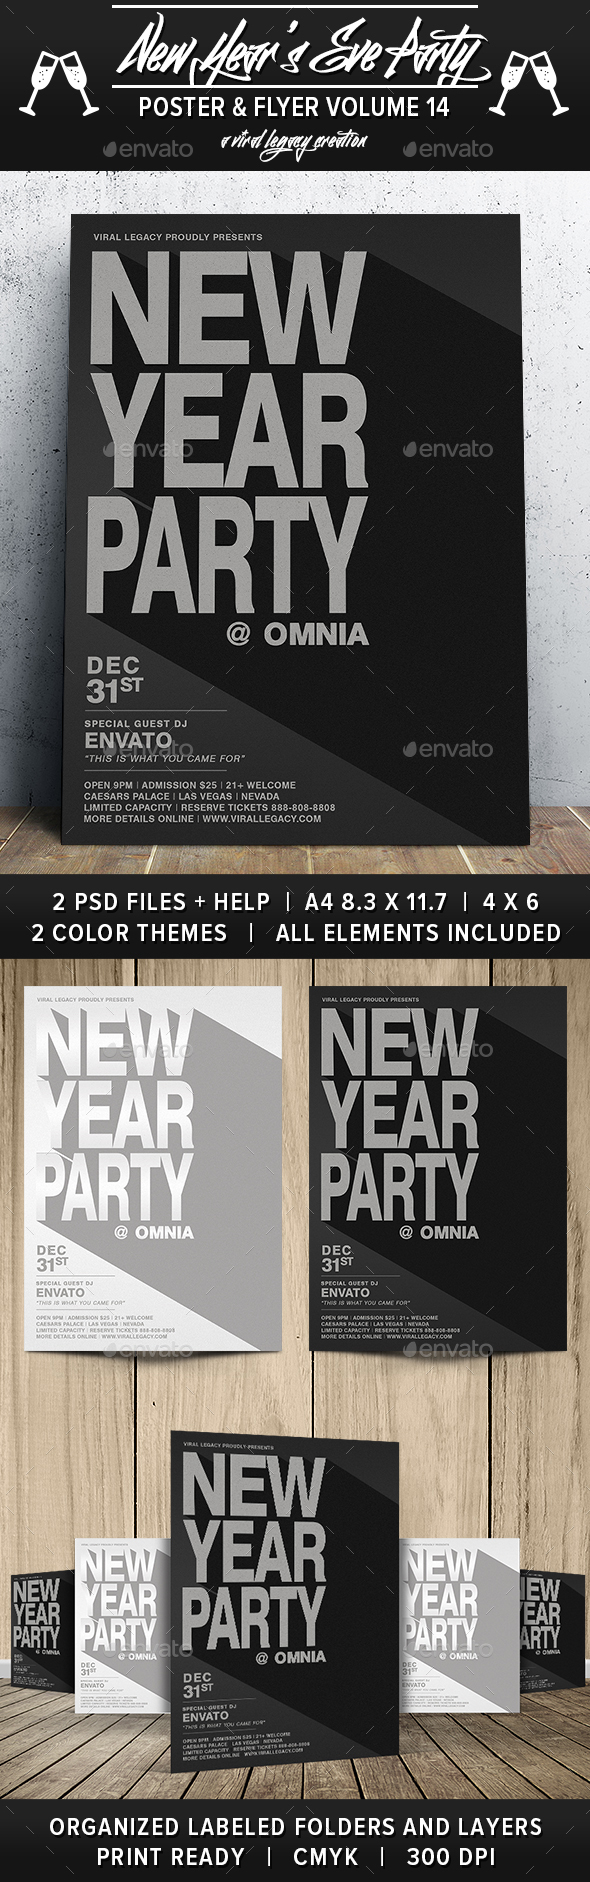 New Year's Eve Party V14 - Flyers Print Templates